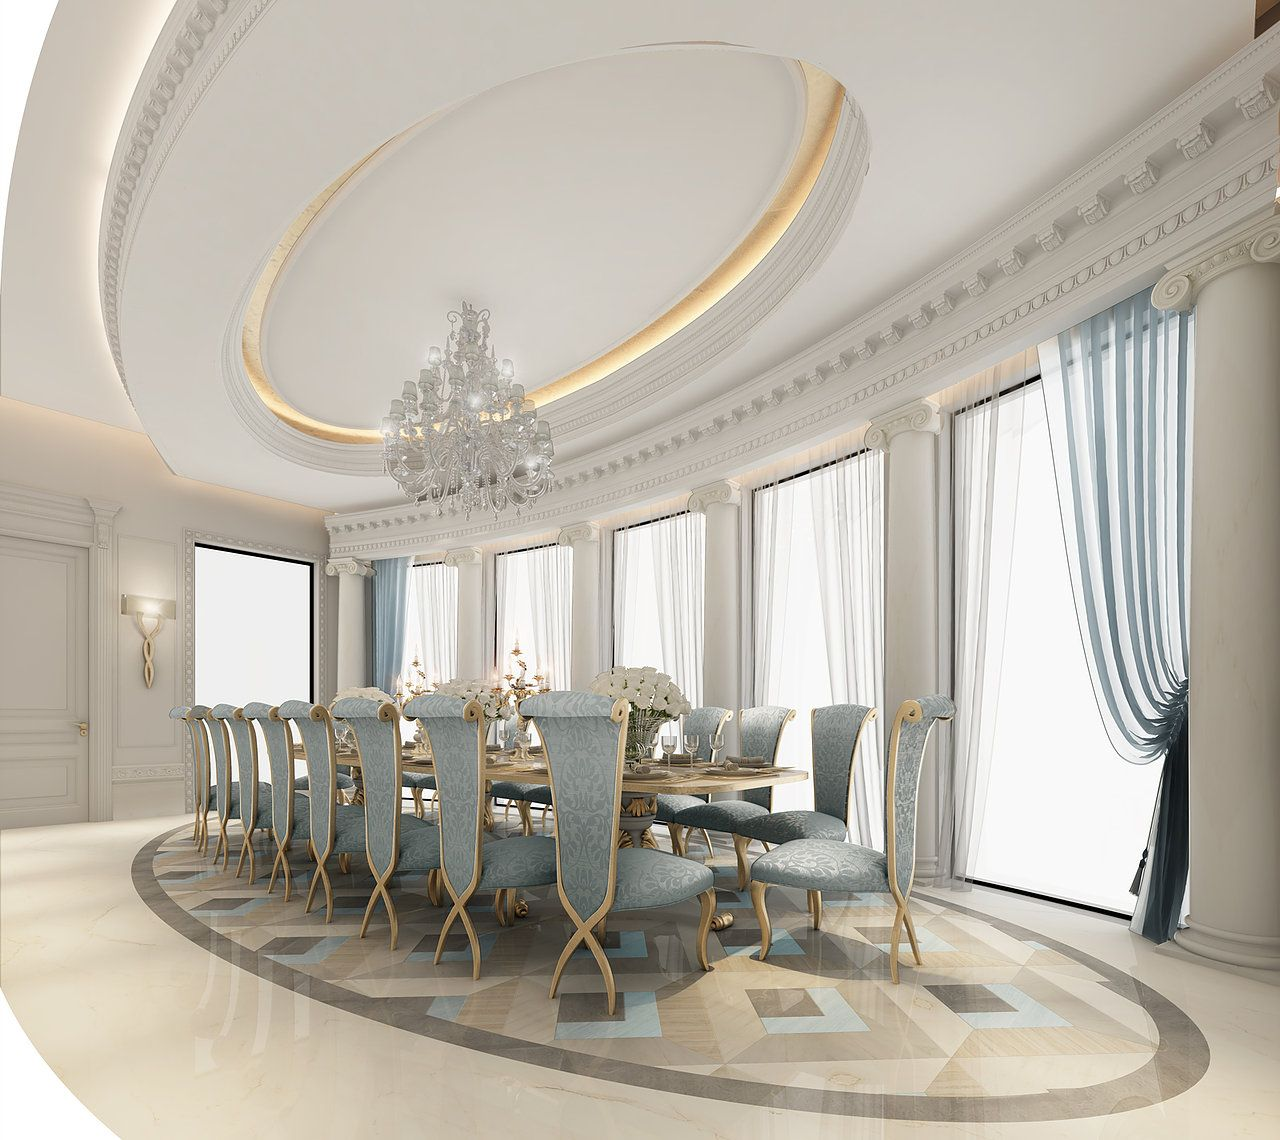 Delicieux Luxury Interior Design Dubai...IONS One The Leading Interior Design  Companies In Dubai